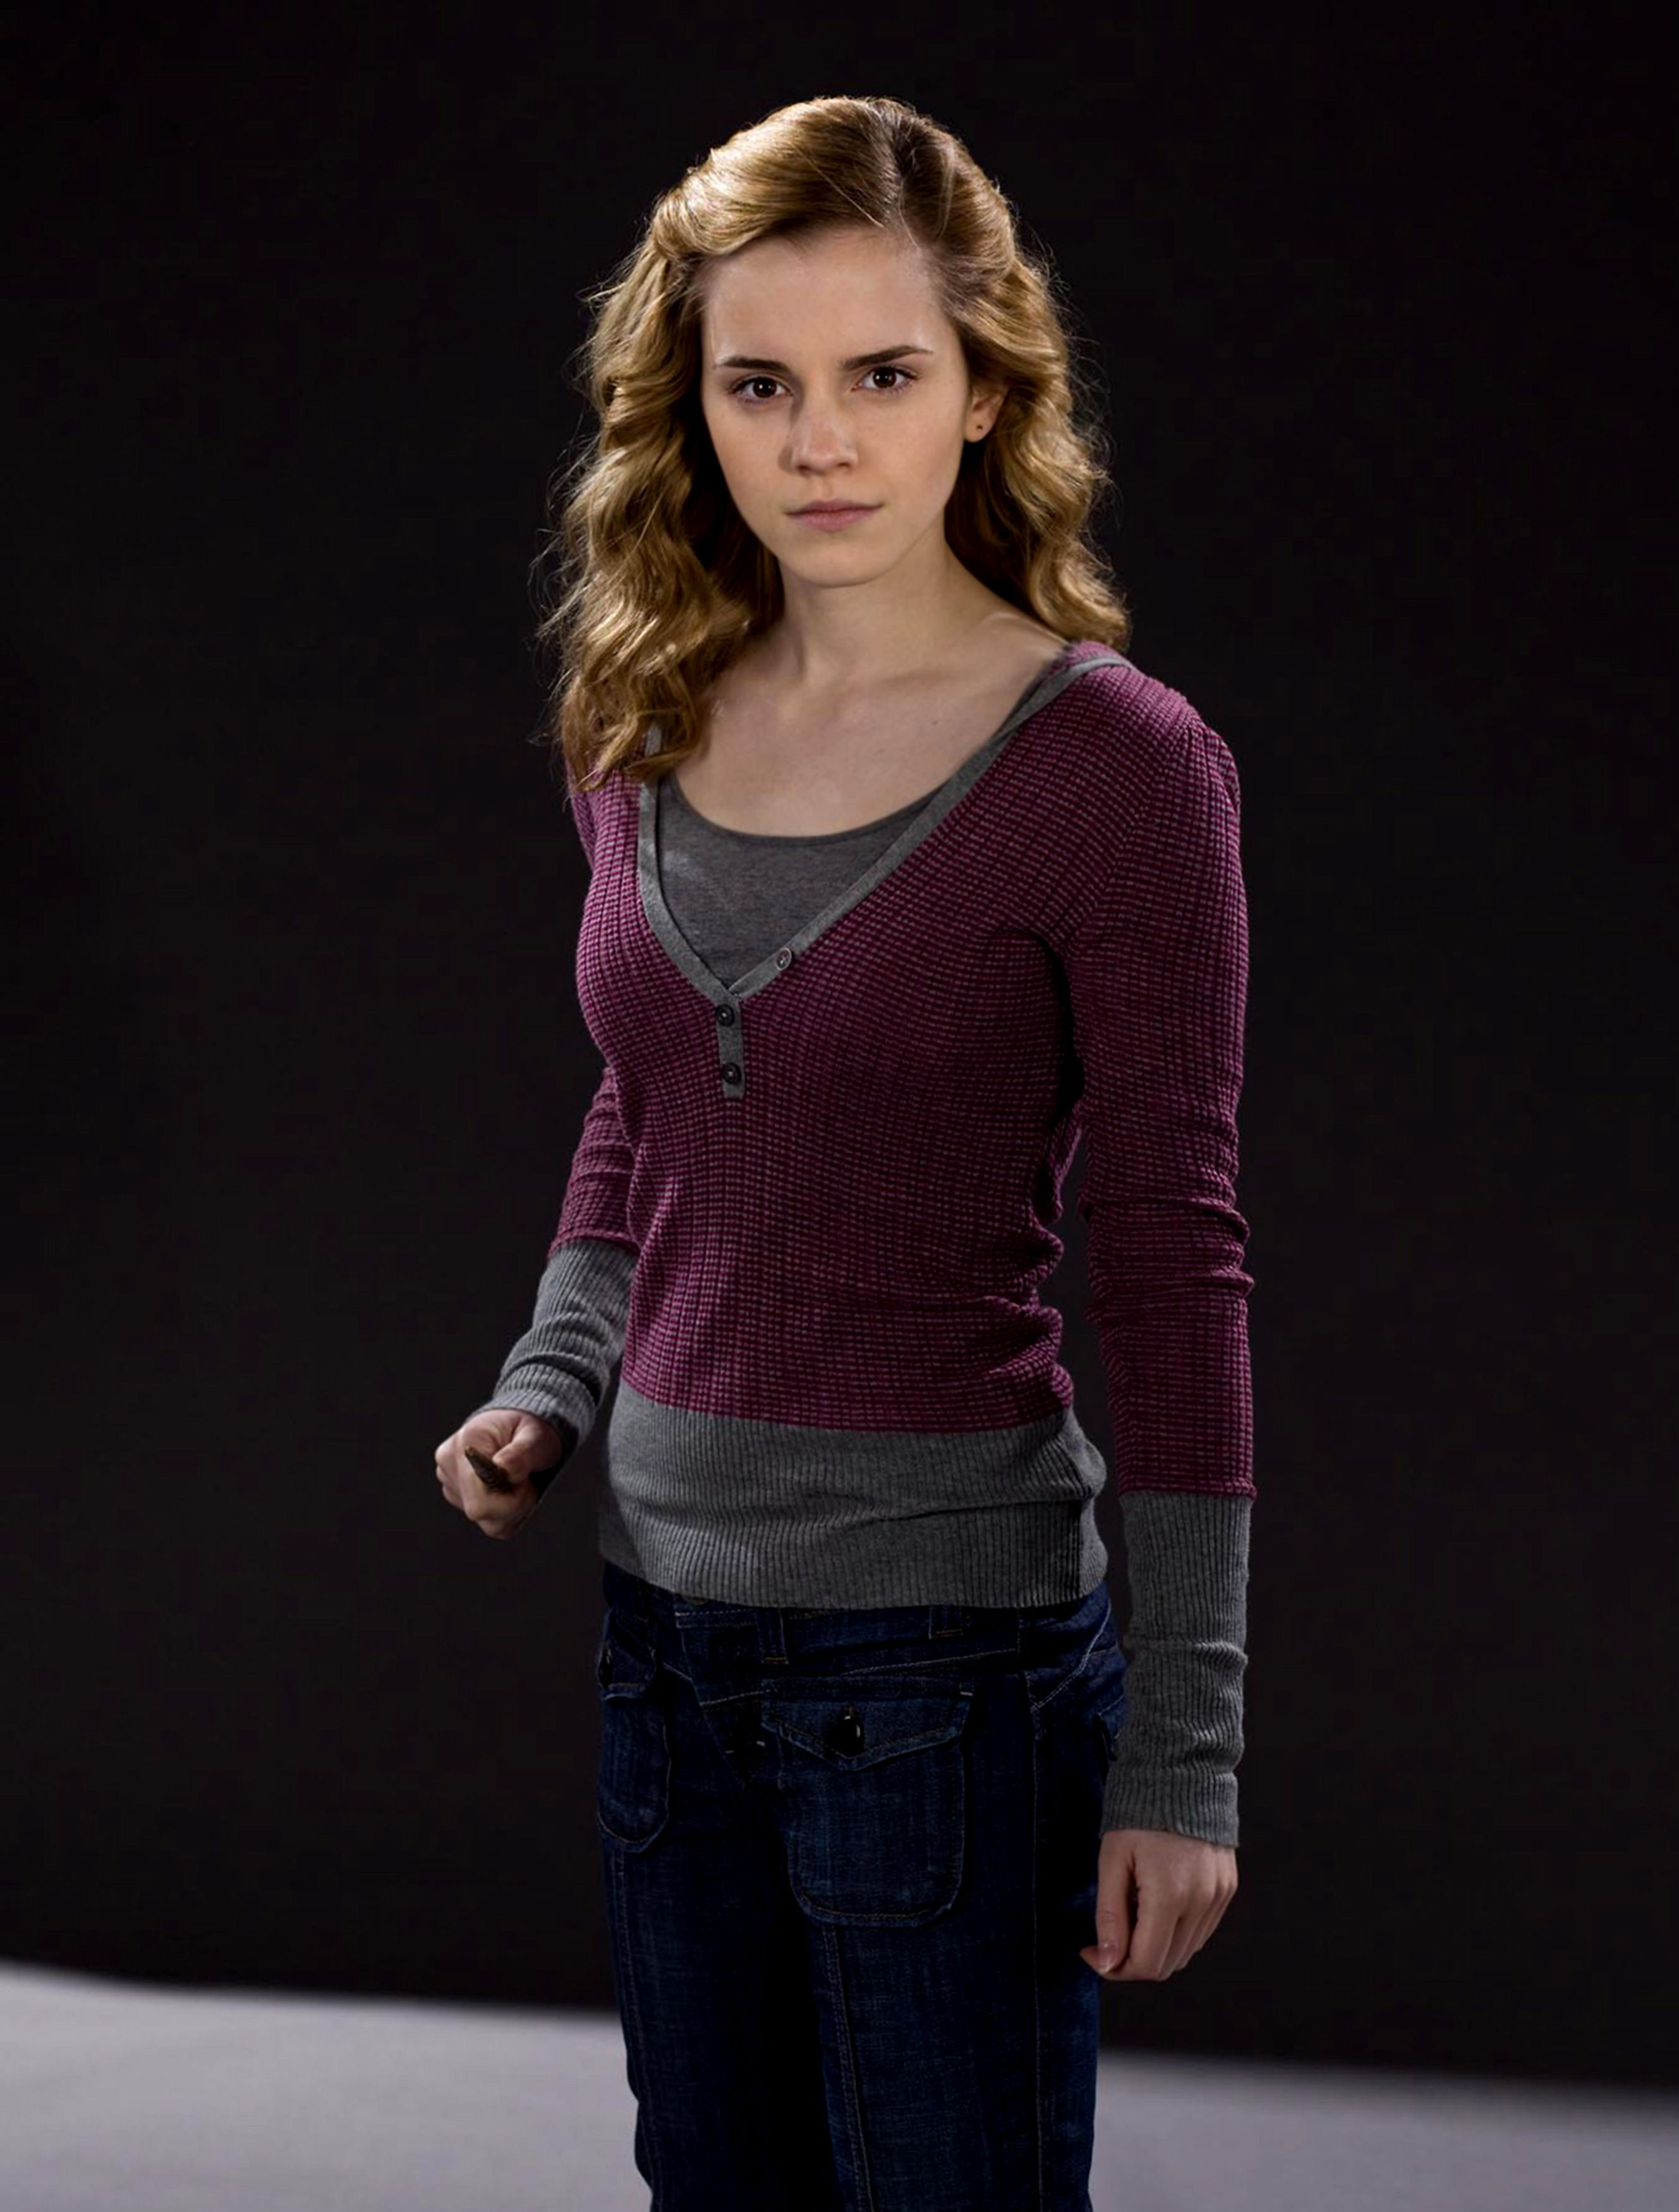 Pin By Chasing Tee On Harry Potter Emma Watson Harry Potter Hermione Granger Outfits Hermione Granger